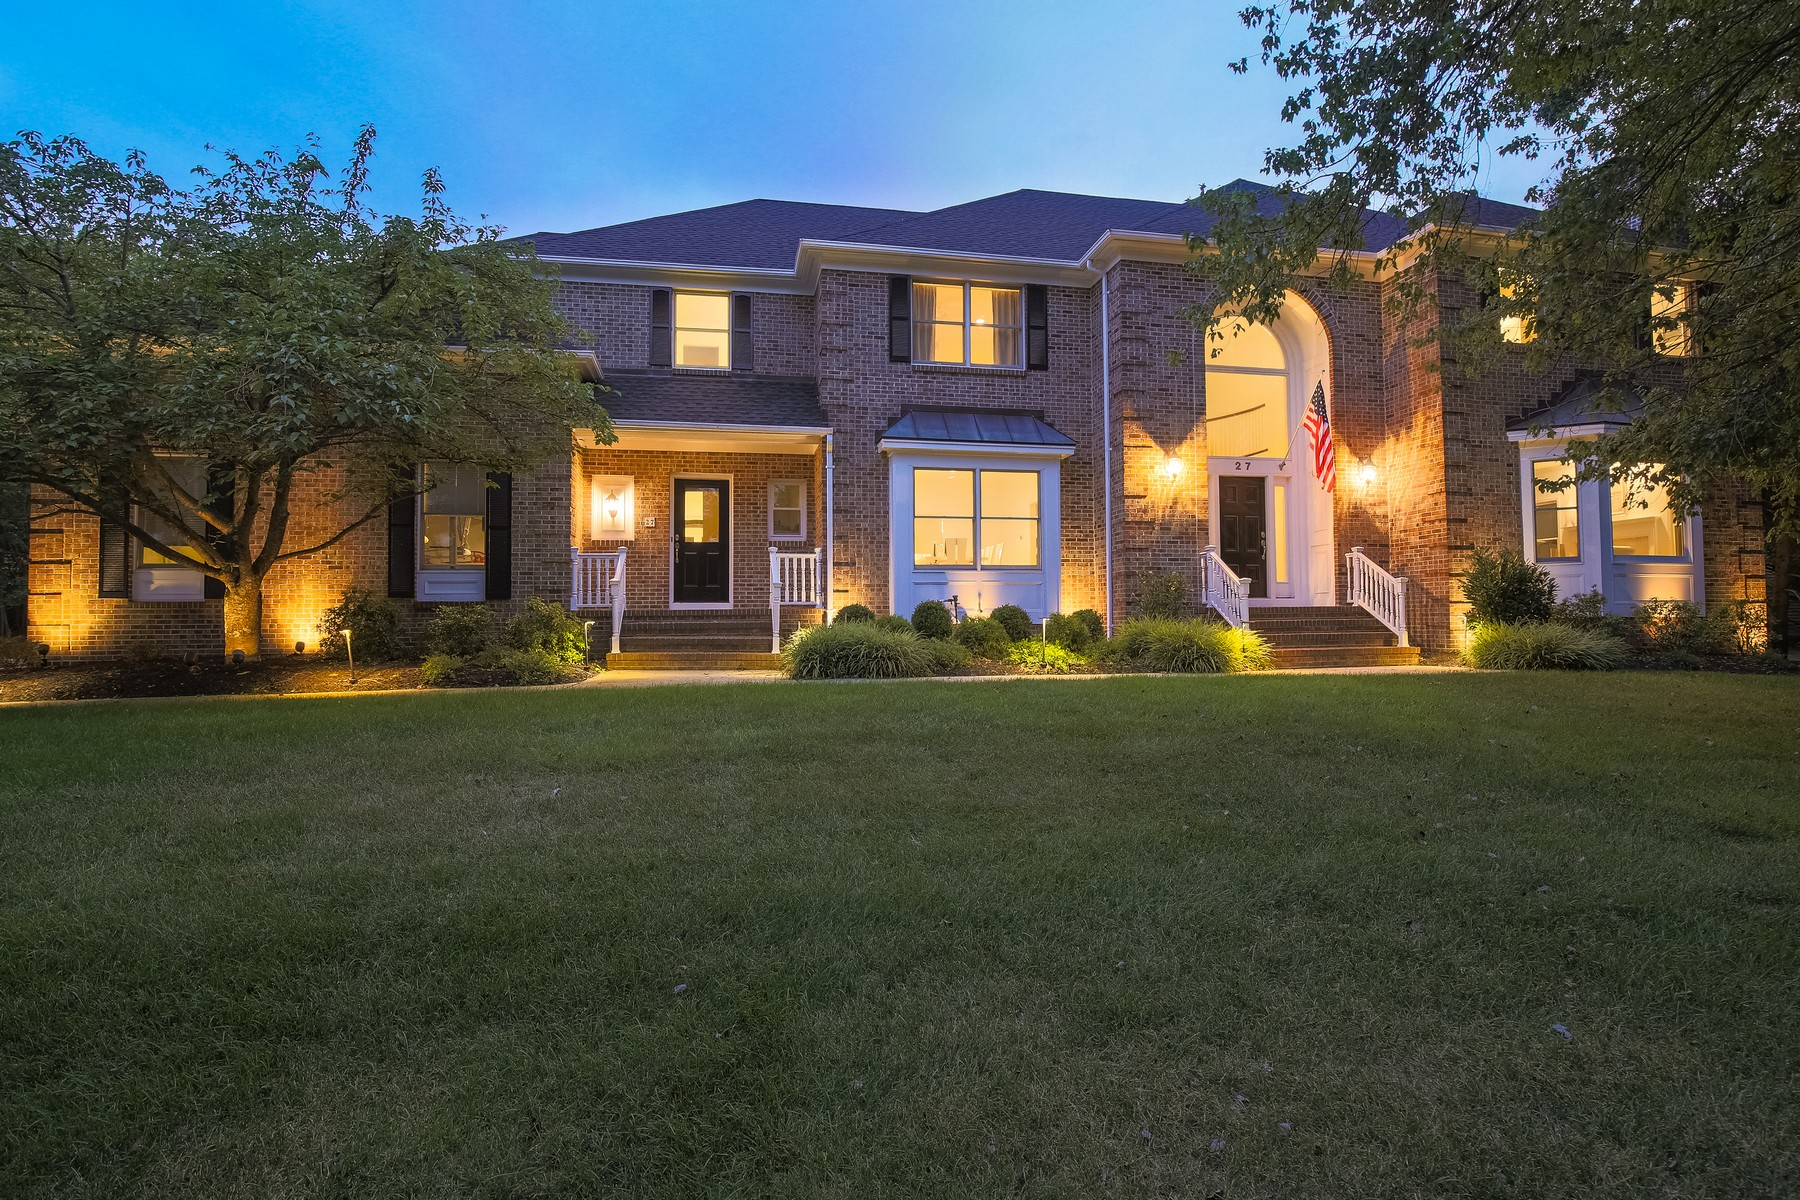 Single Family Home for Sale at Elegant Colonial 27 Running Brook Road Bridgewater, New Jersey, 08807 United States